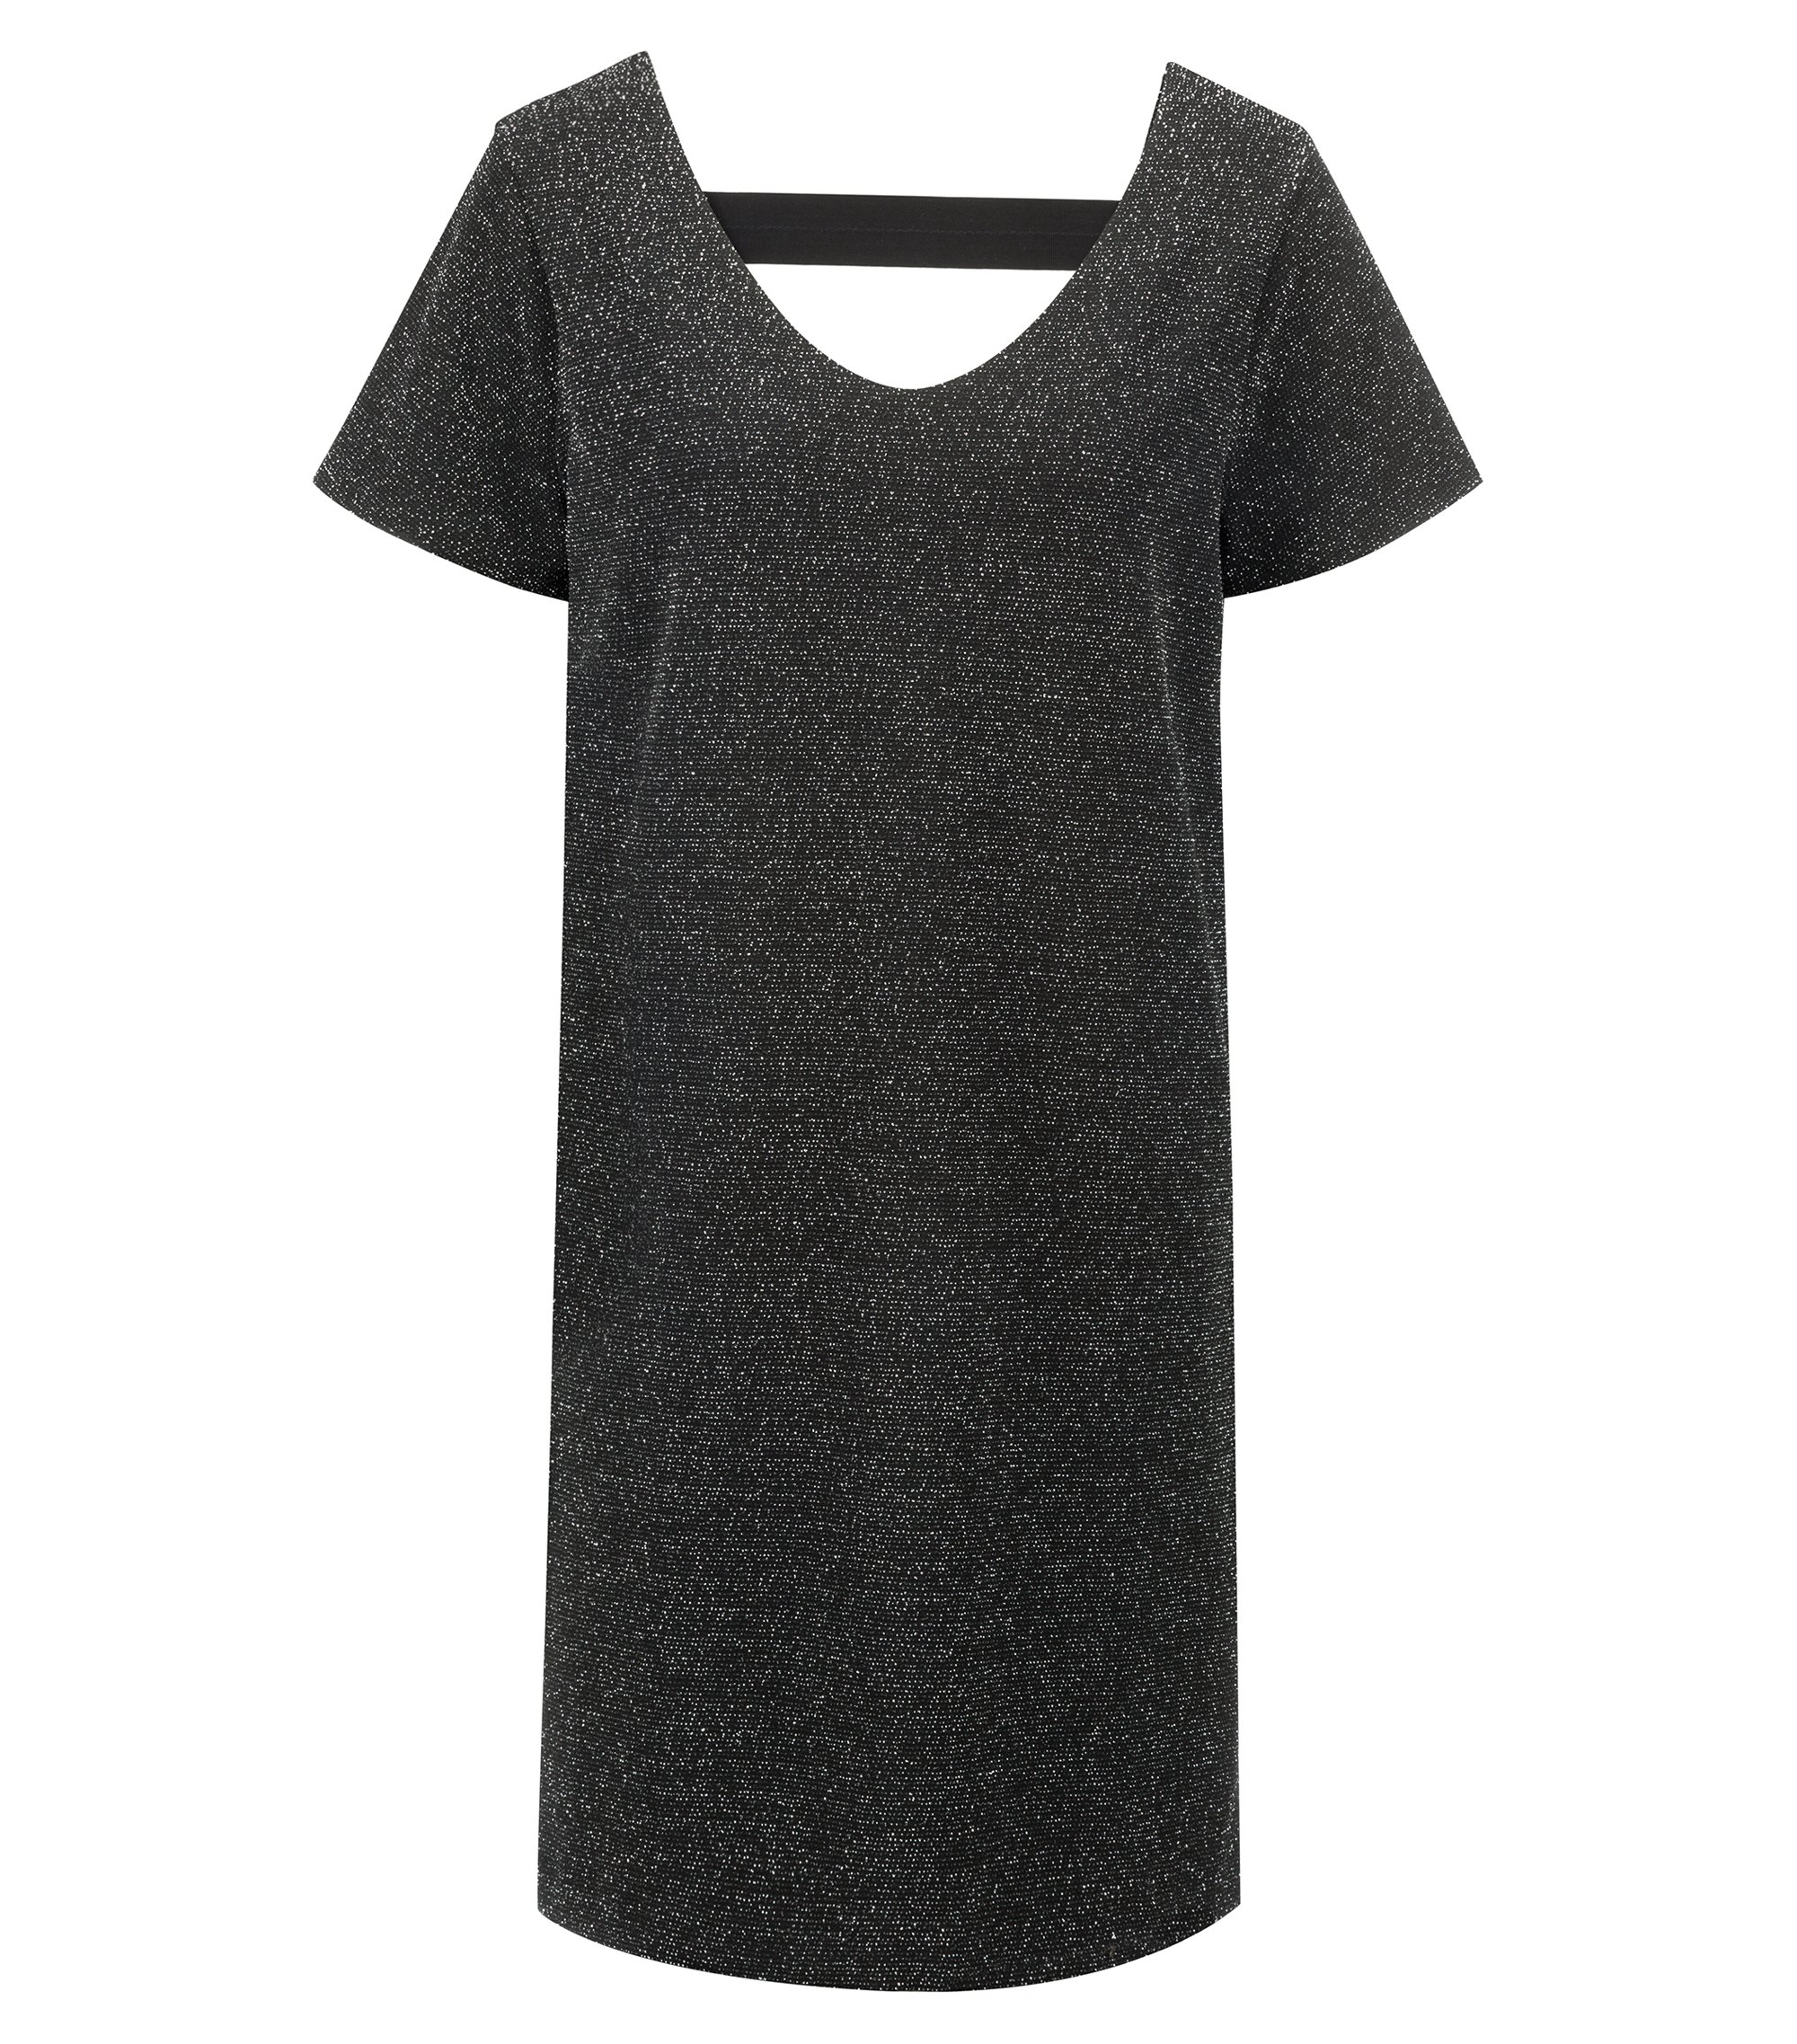 Relaxed-fit dress in sparkly stretch-jersey fabric, Black